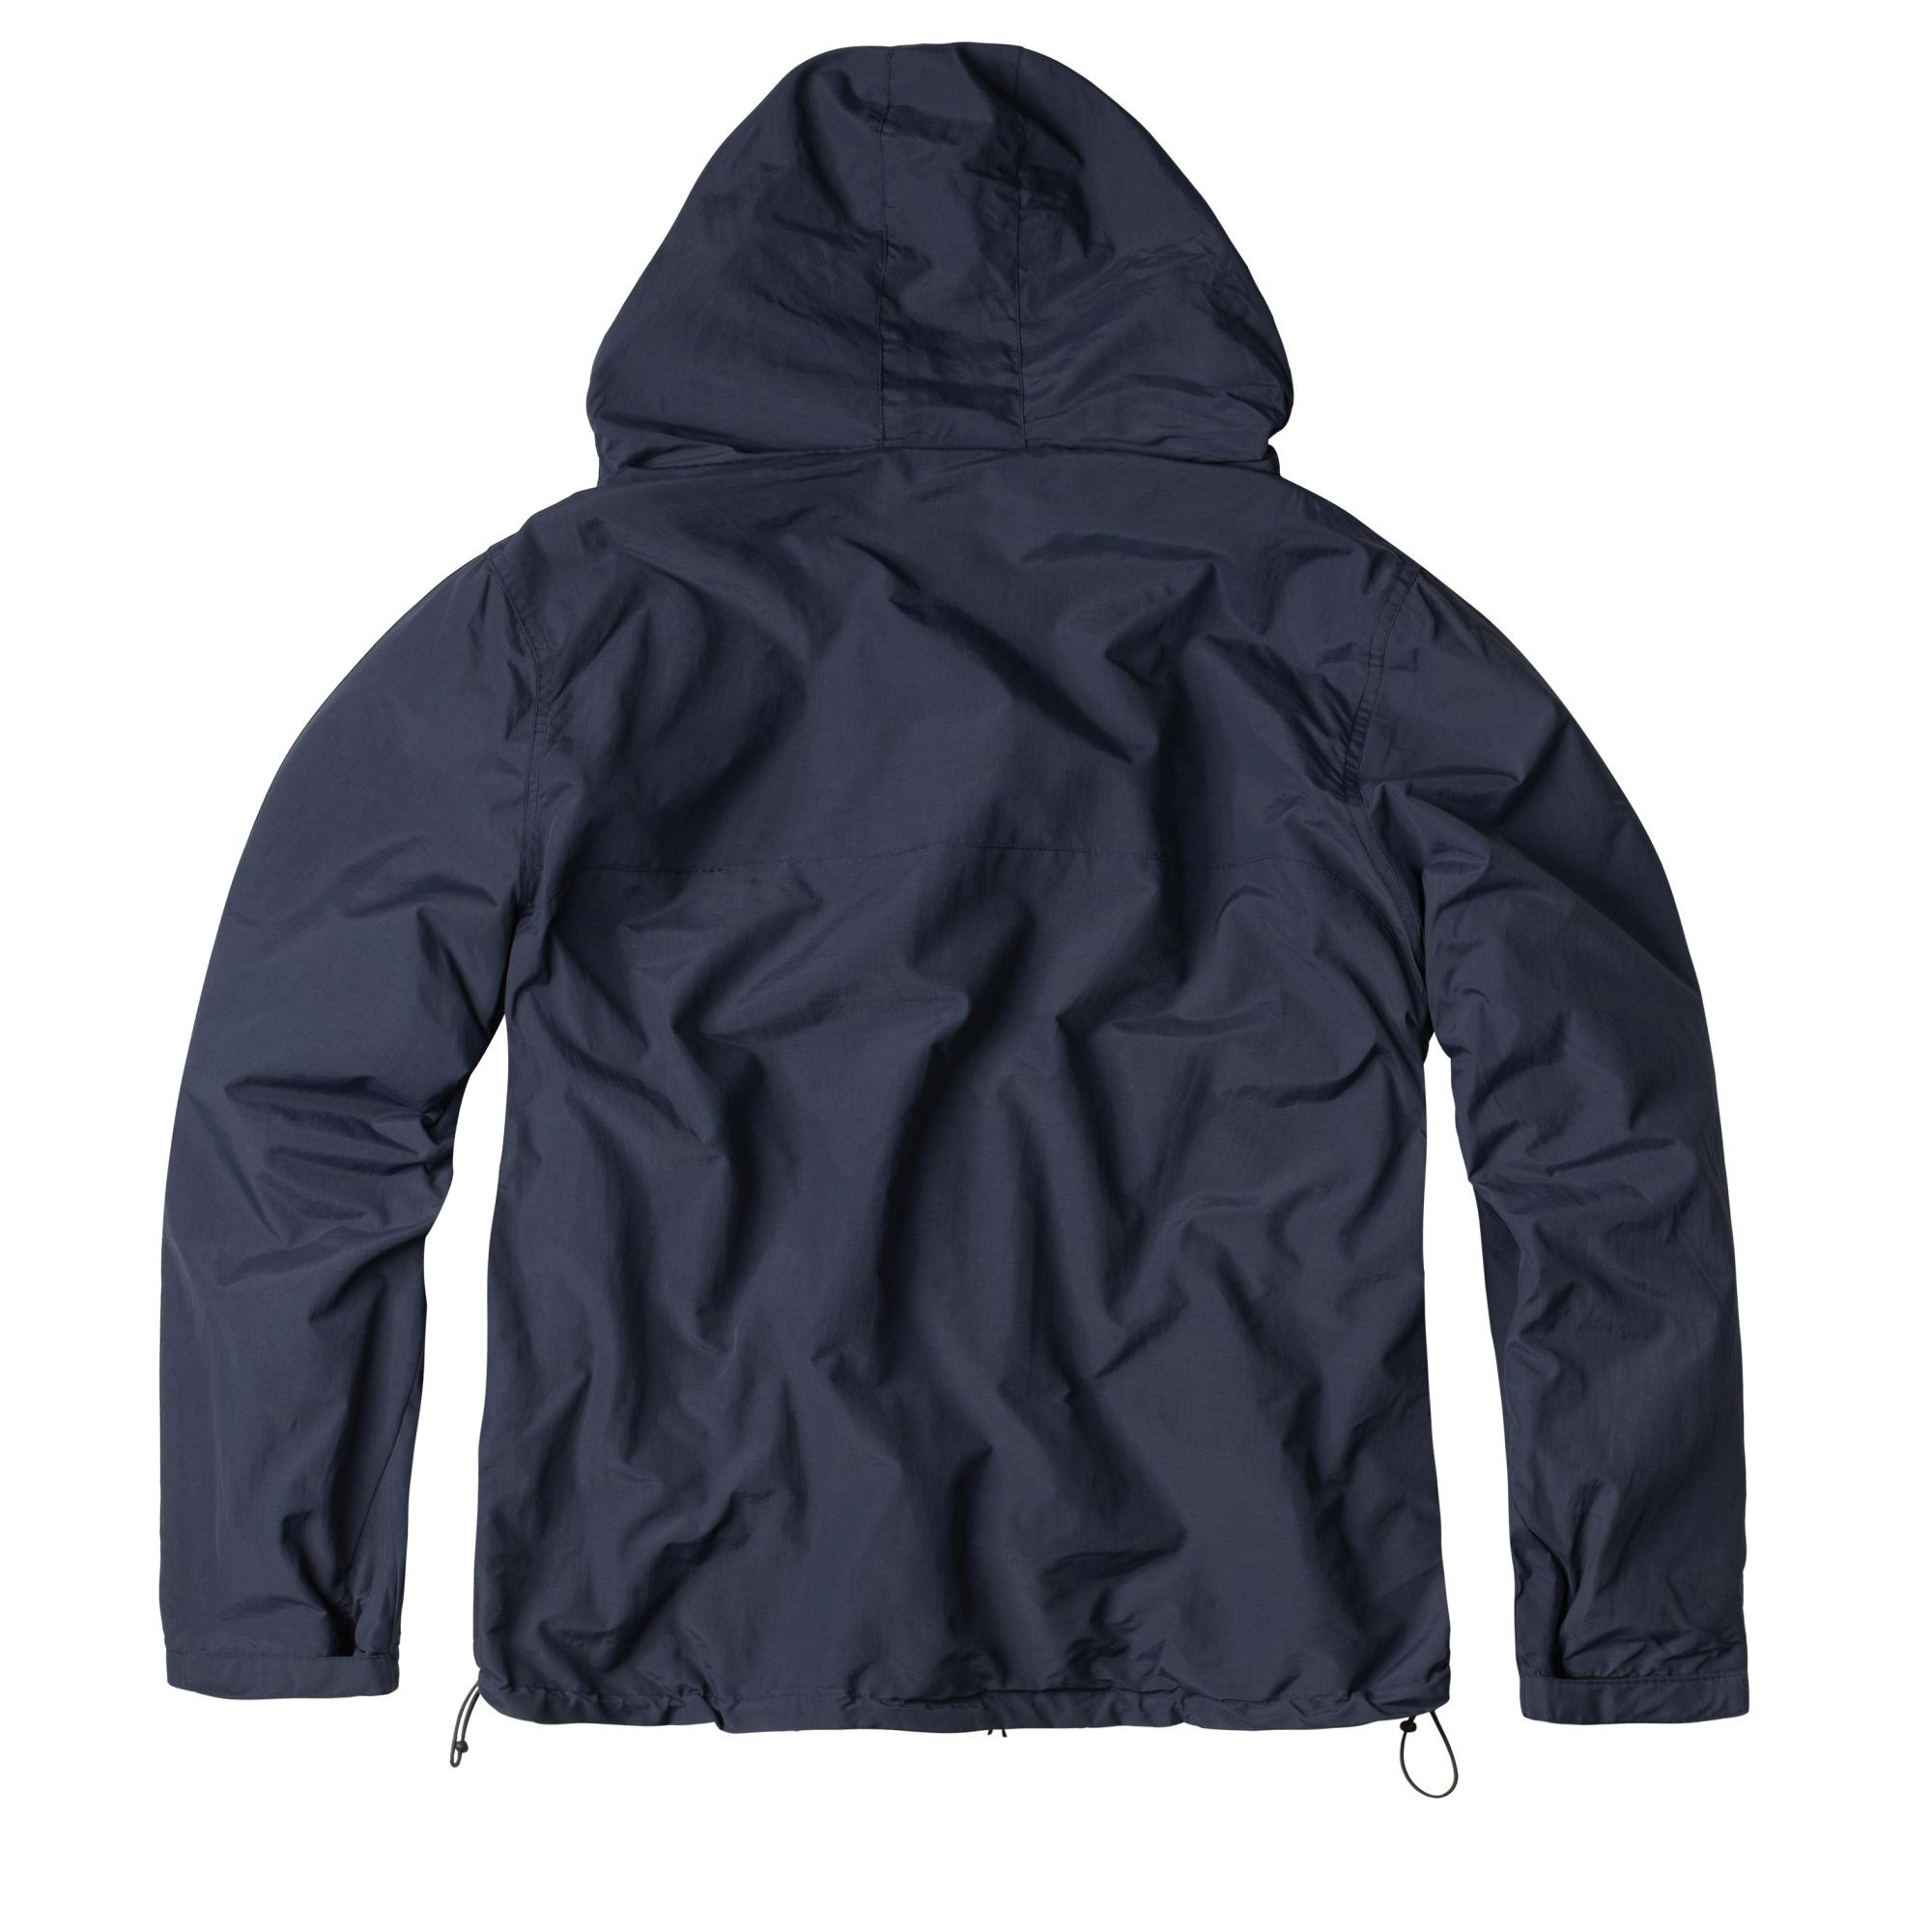 Bunda WINDBREAKER ZIPPER MODRÁ NAVY SURPLUS 20-7002-10 L-11